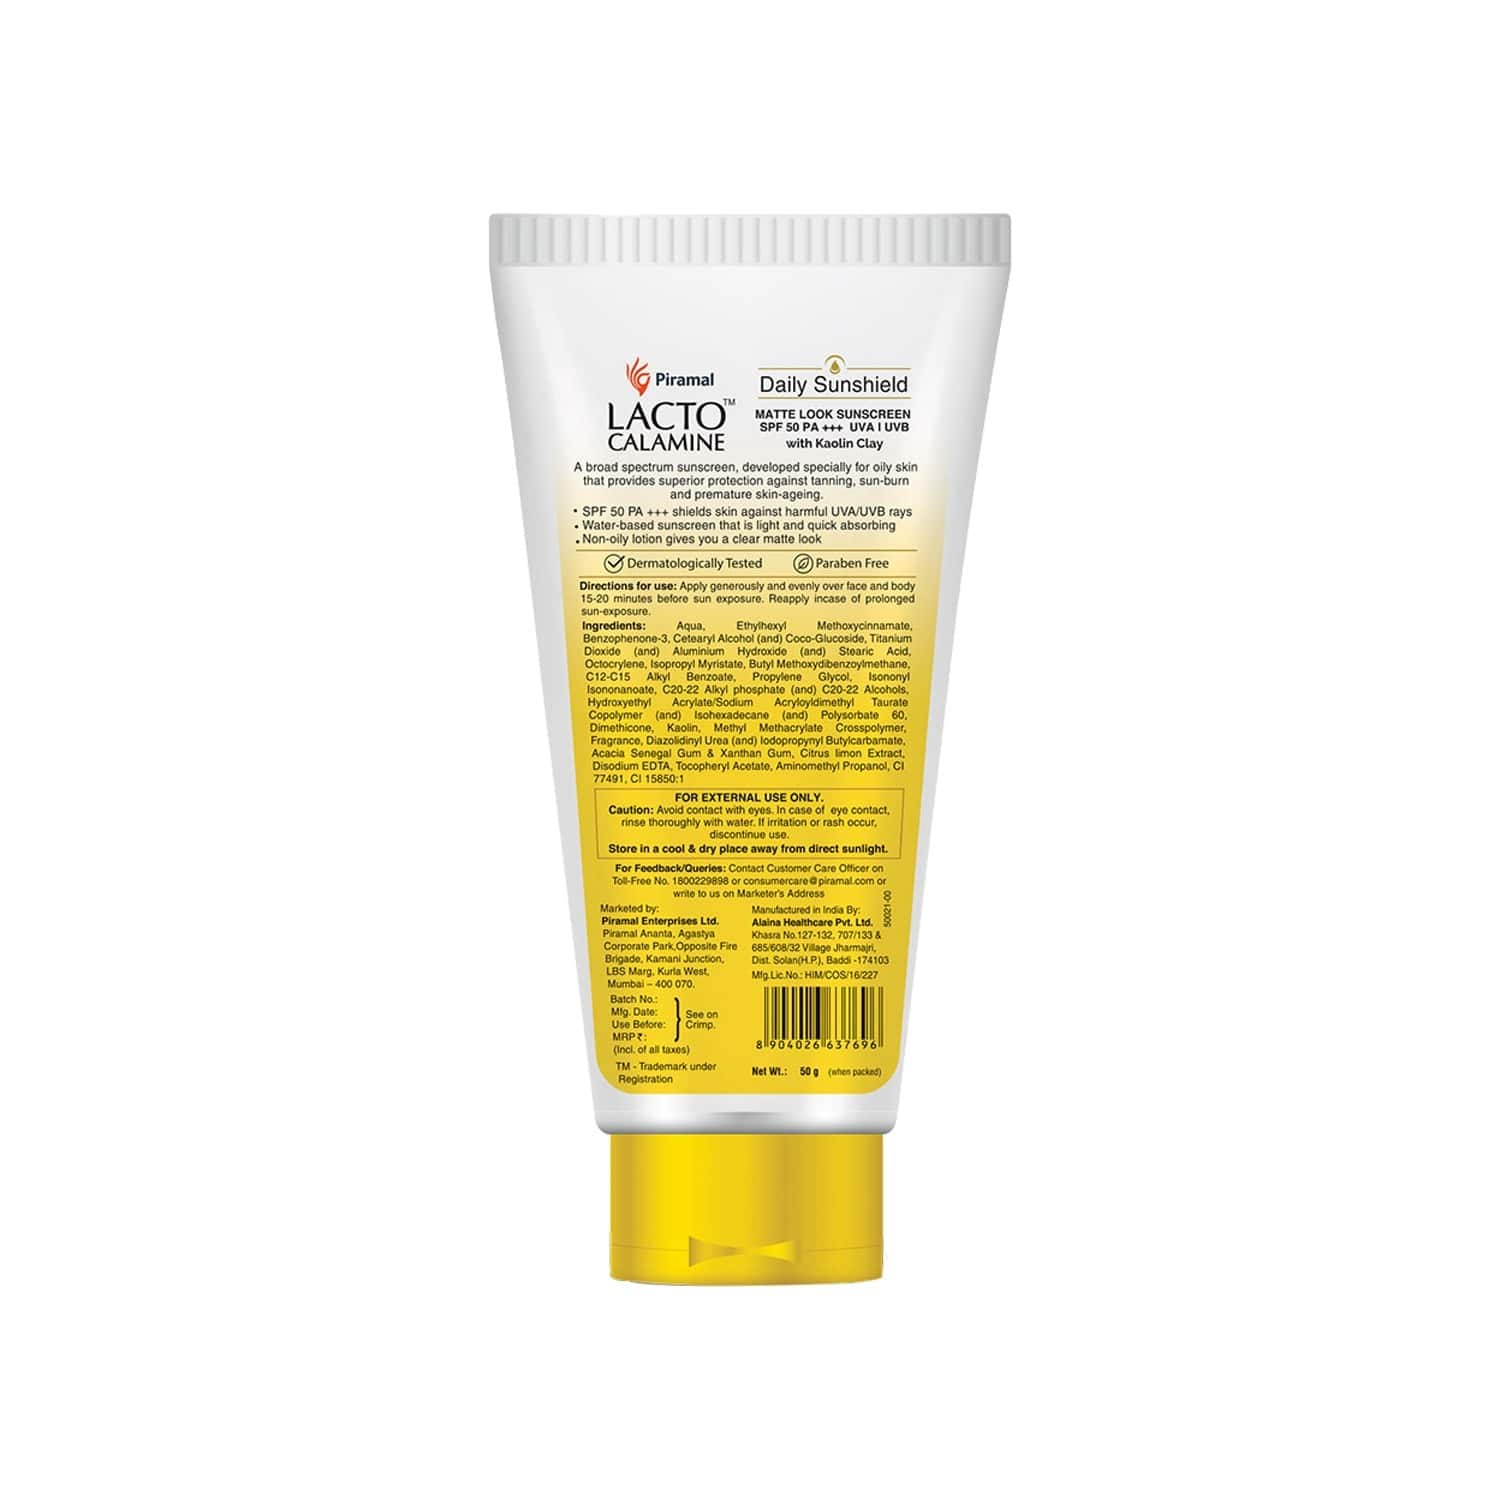 Lacto Calamine Daily Sunshield Matte Look Sunscreen Spf 50 Pa +++ ( For Oily Skin Light & Non Sticky) - 50g